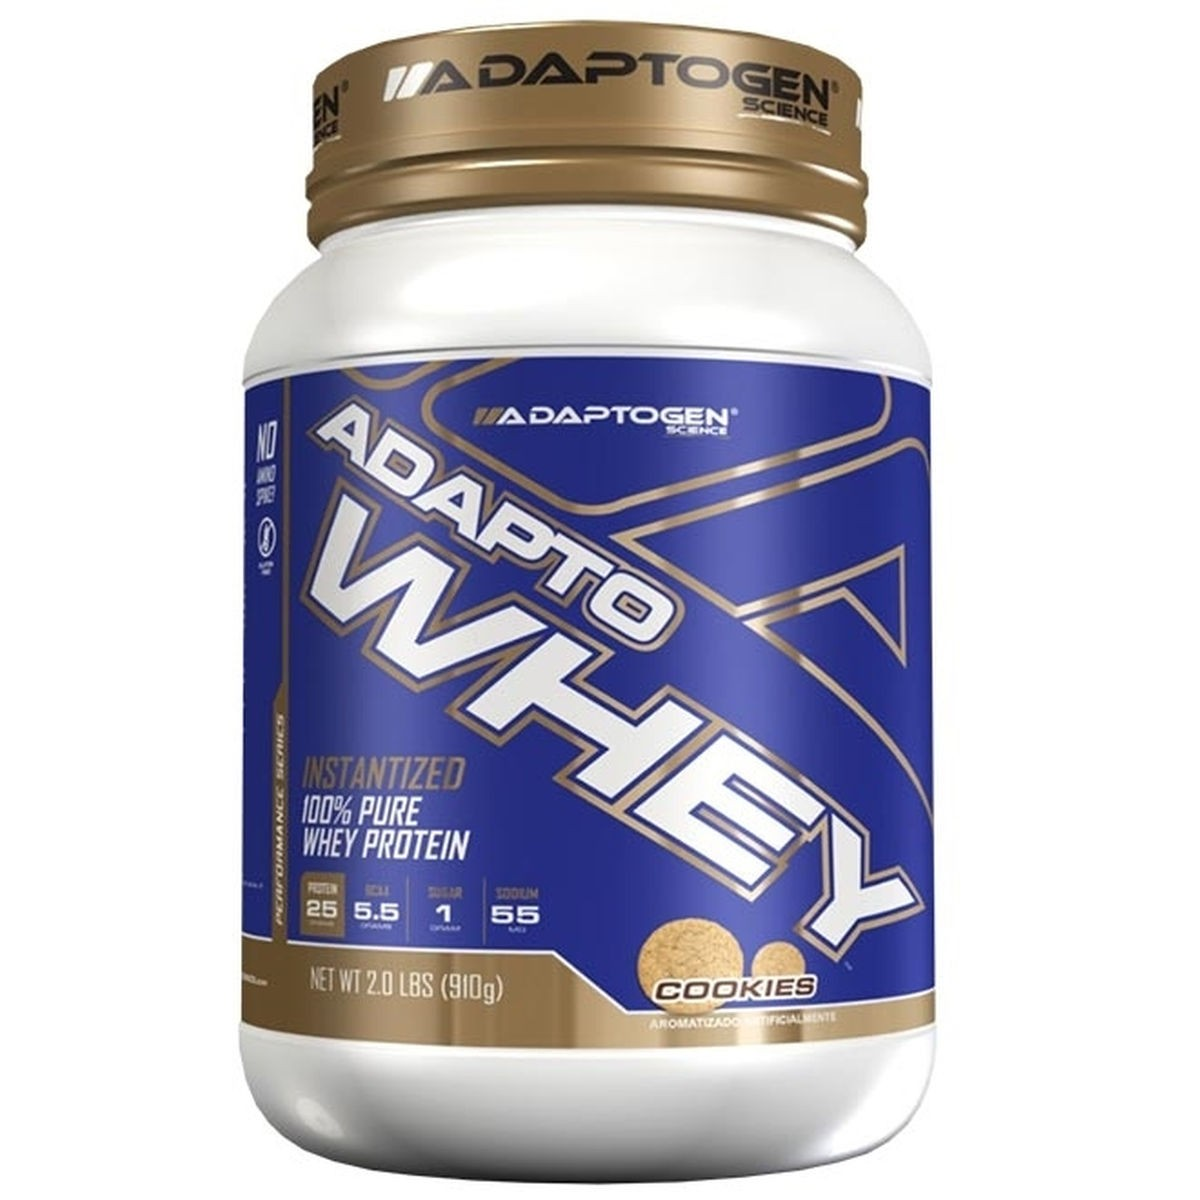 Foto 1 - Adapto Whey Cookies 910g - Adaptogen